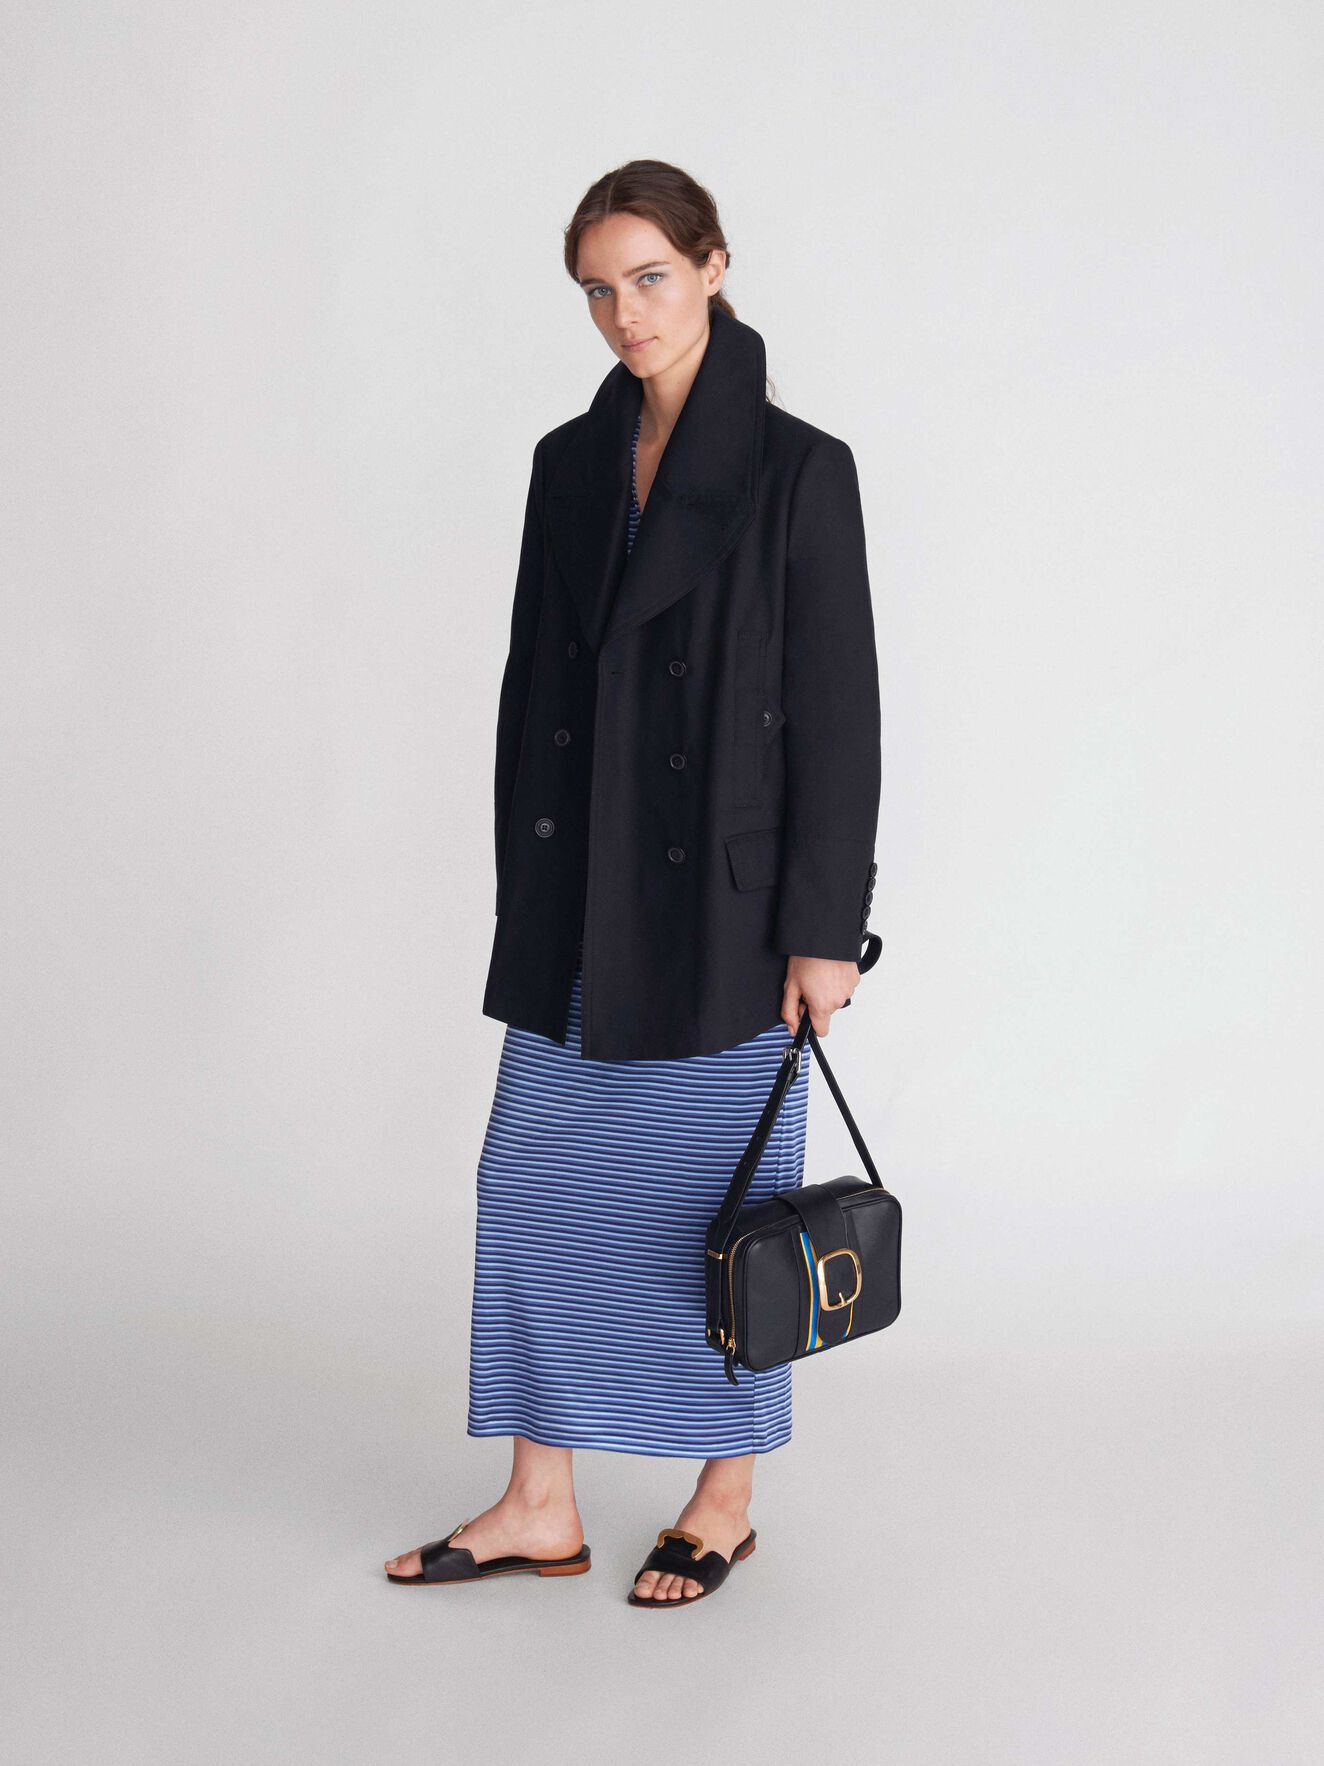 Balnina Bag in Black from Tiger of Sweden